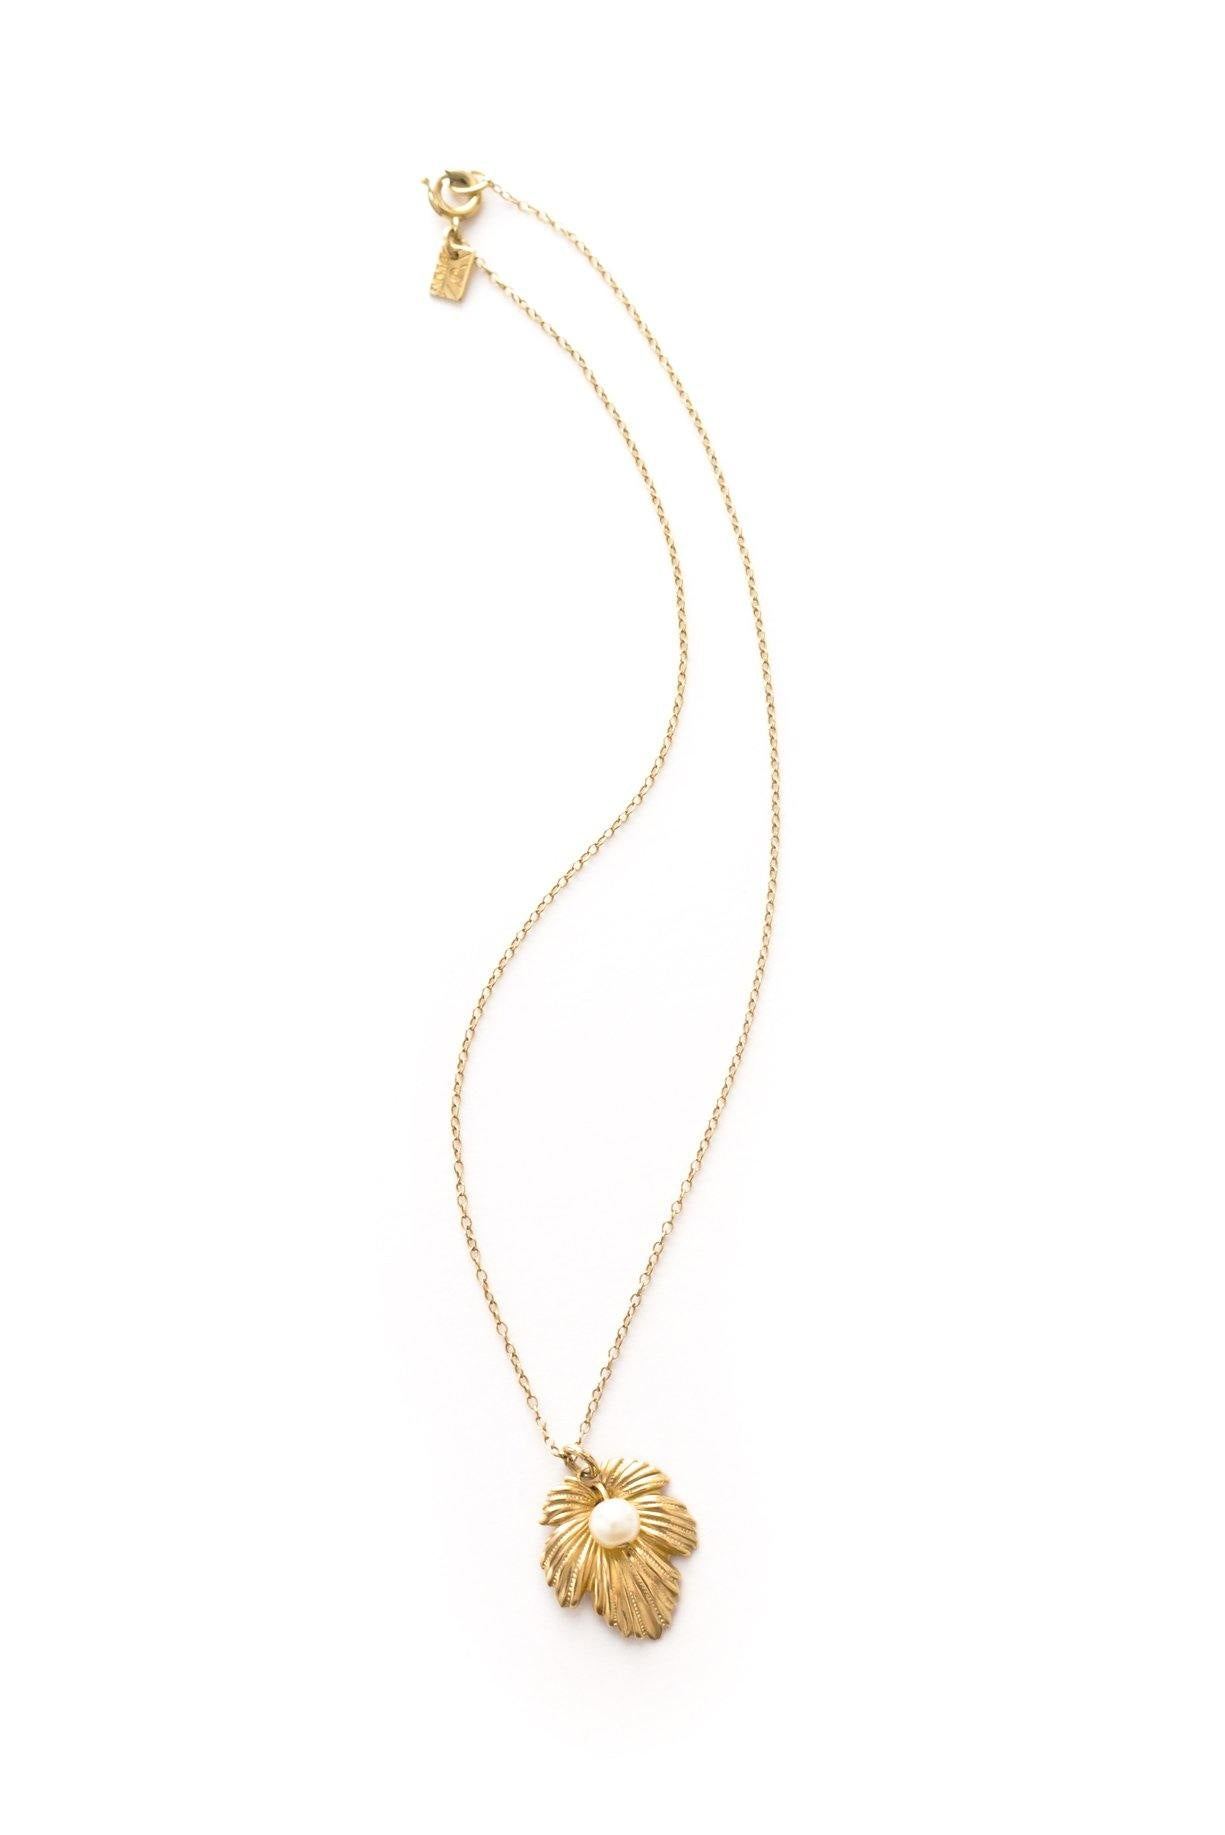 Dainty pearl leaf necklace from Sweet & Spark.